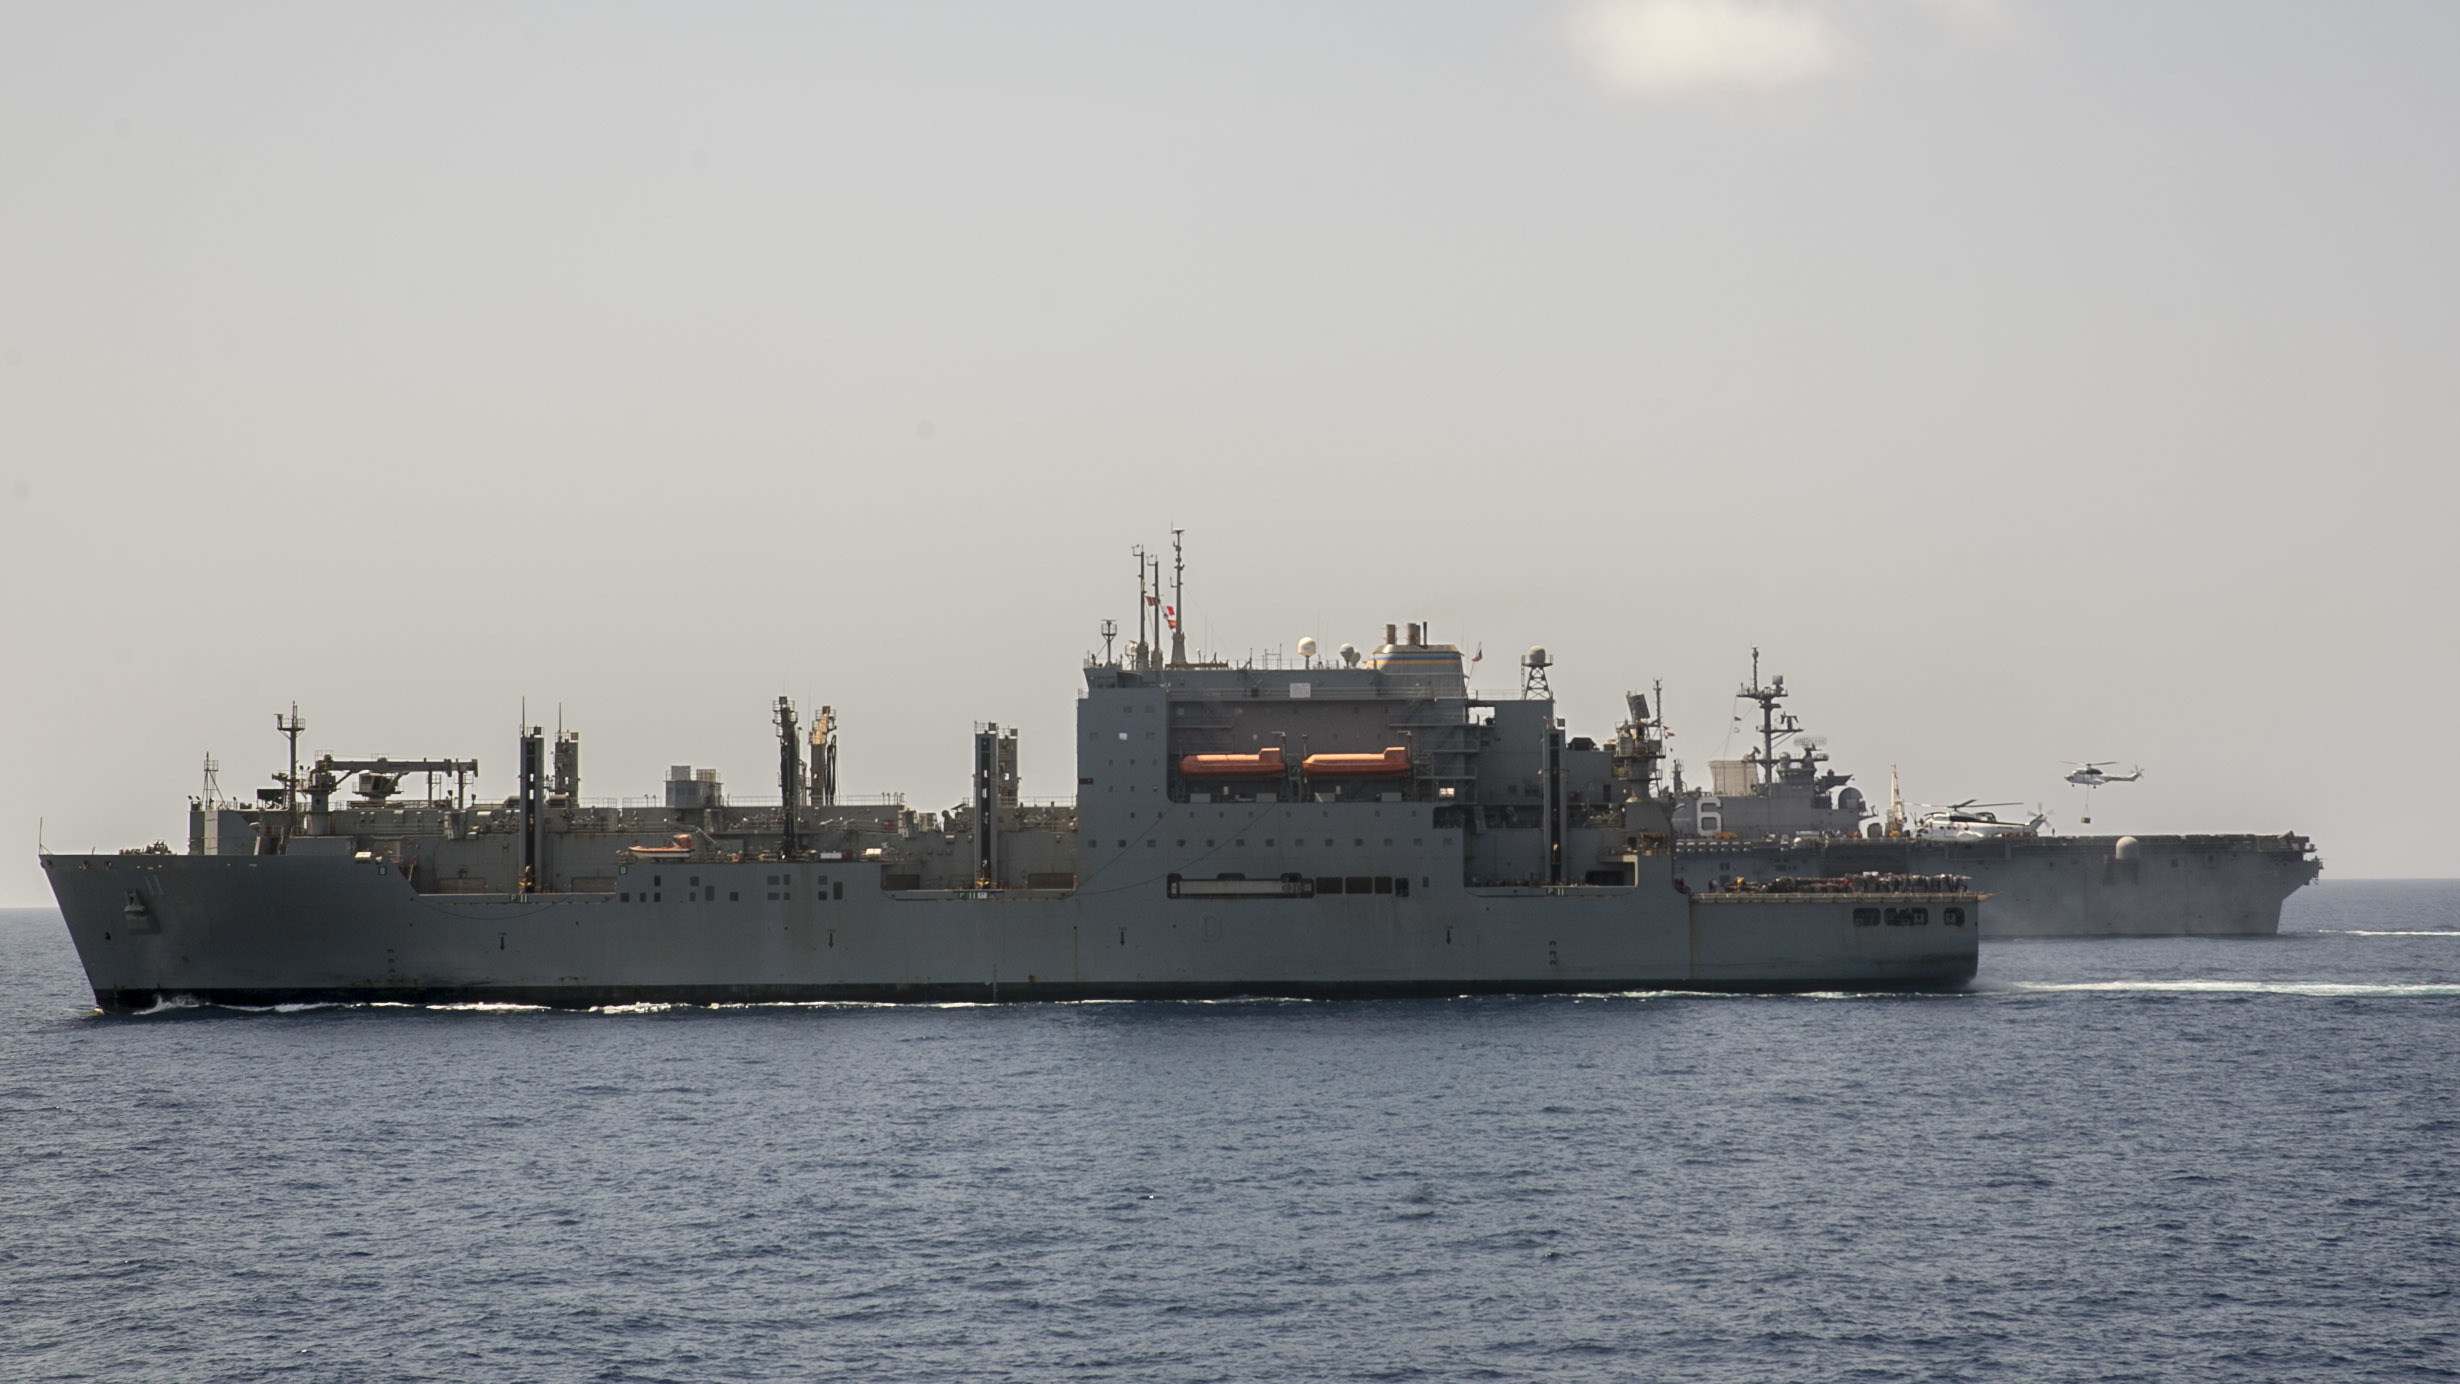 Replenishment at Sea, Navy, Ship, States, United, HQ Photo